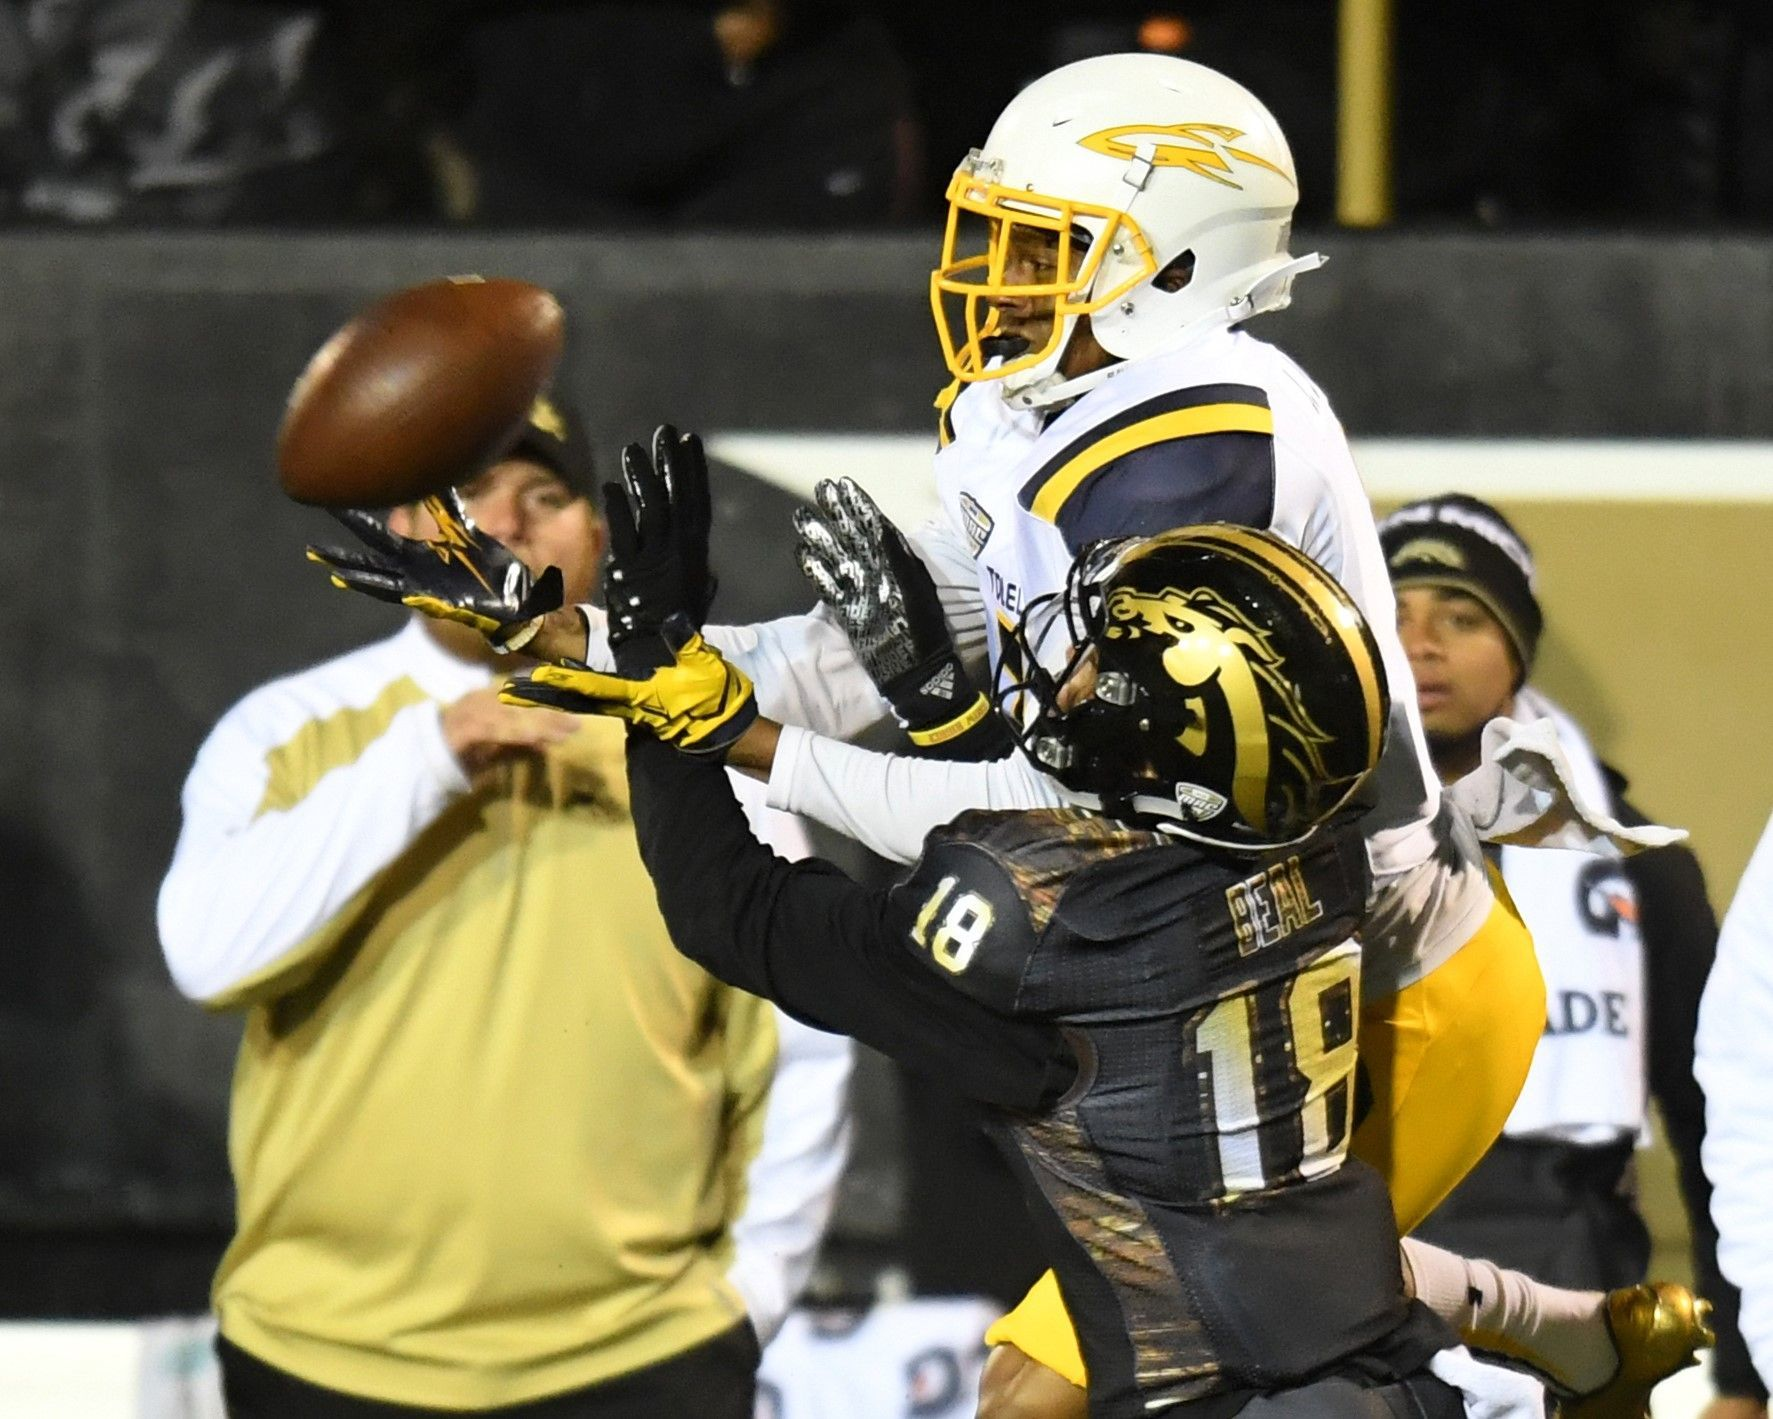 15. Toledo at Western Michigan. When: Oct. 25. Where: Kalamazoo. The buzz: Toledo dominated their MAC West rivals last year, 37-10. But this year's game should be different with both teams returning key starters.